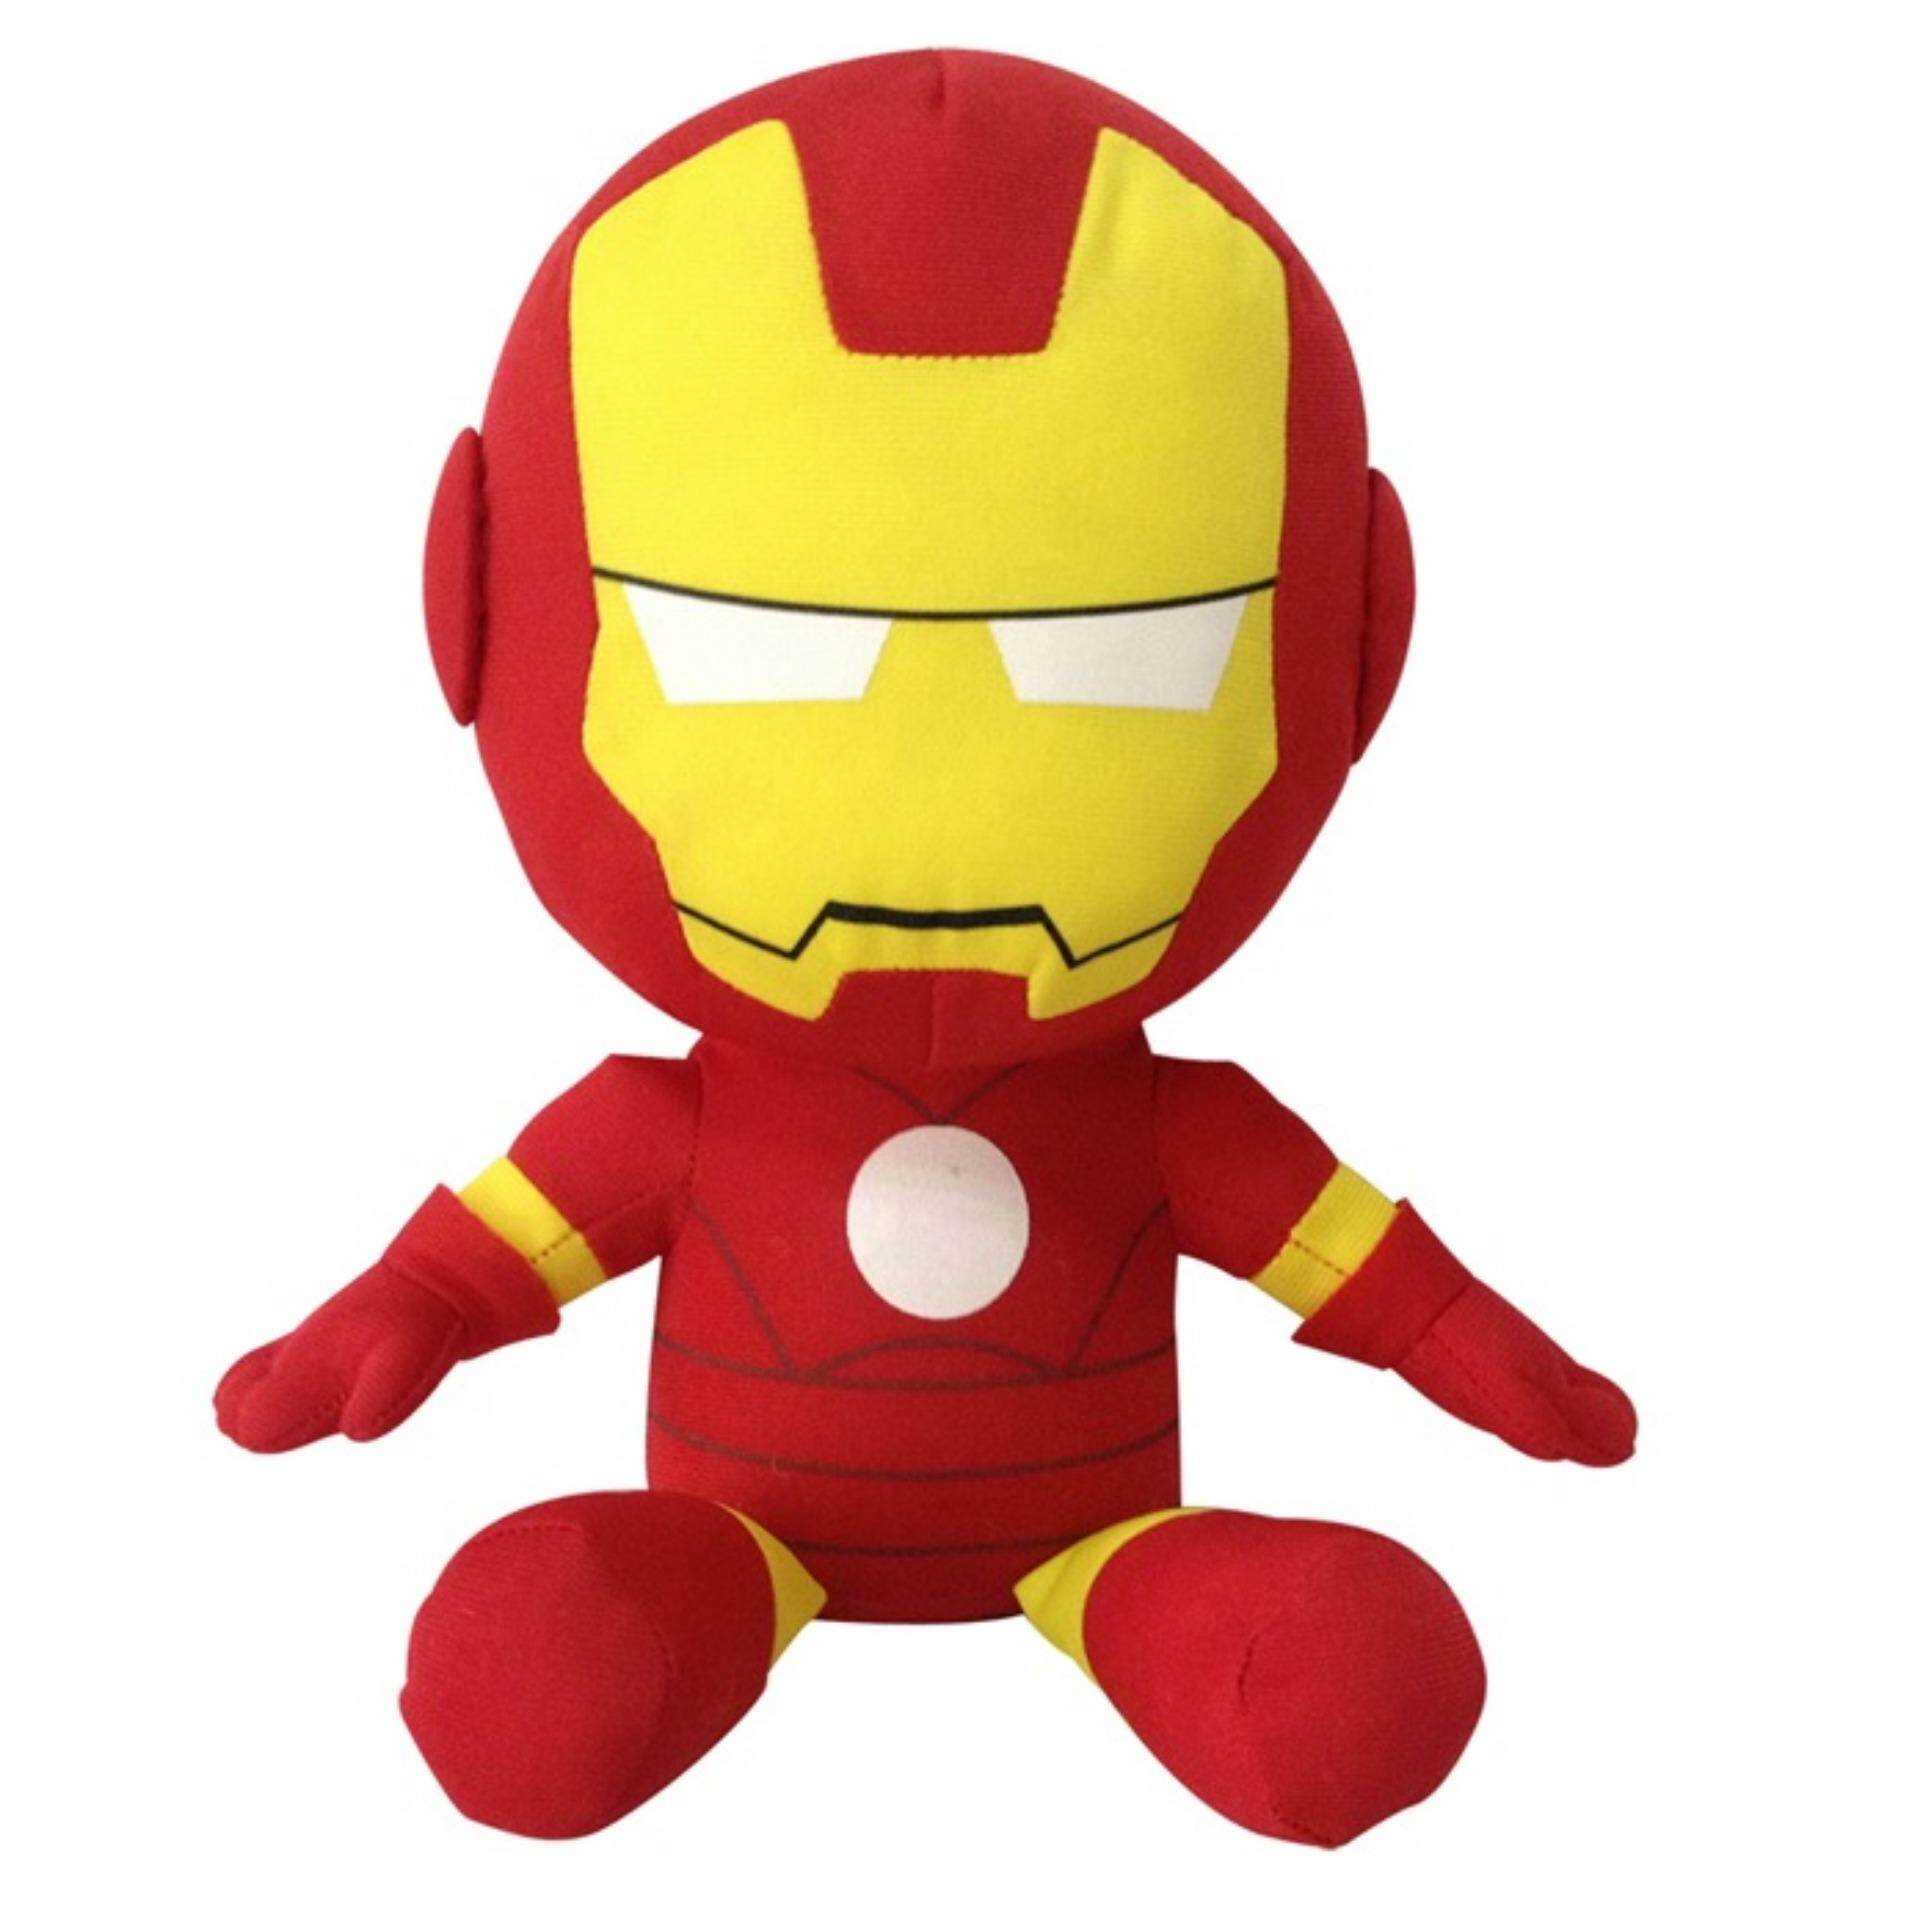 Marvel Avengers Standard Plush Toys 14 Inches - Iron Man